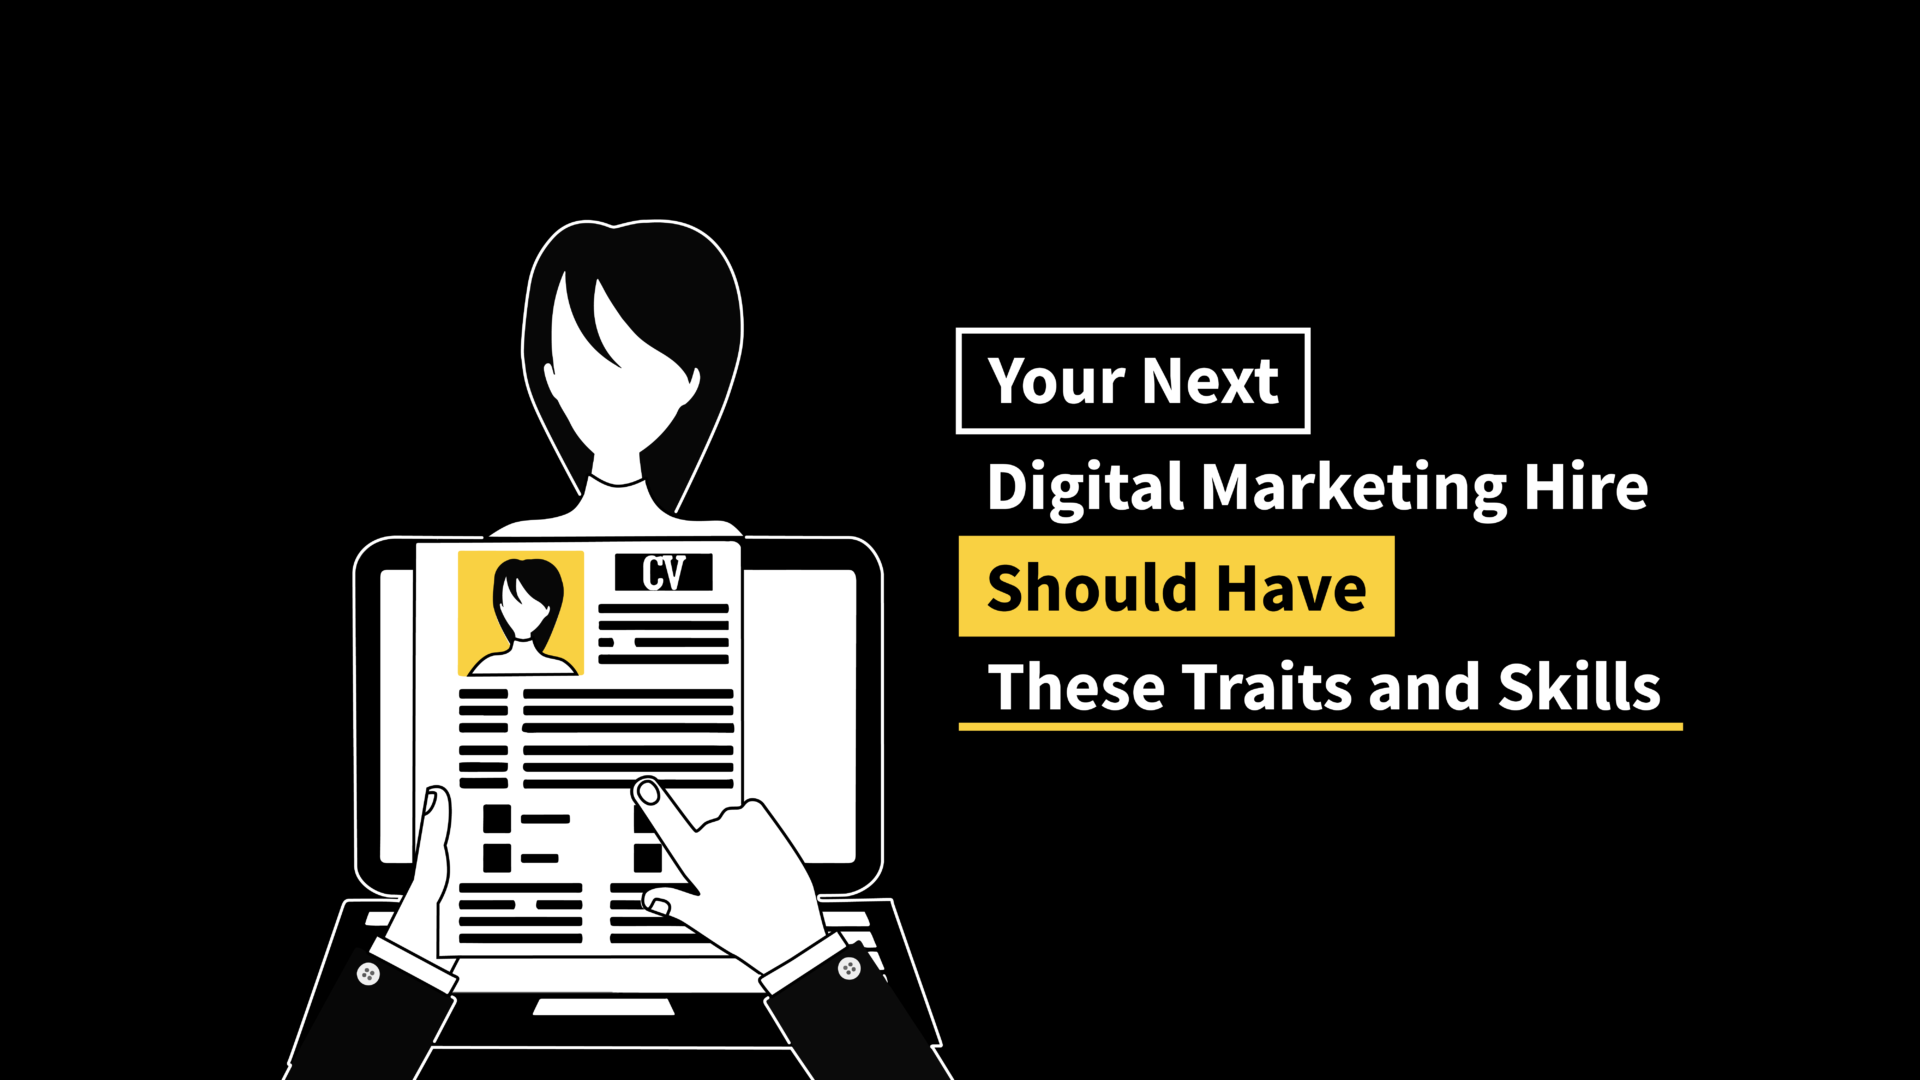 Your Next Digital Marketing Hire Should Have These Traits and Skills